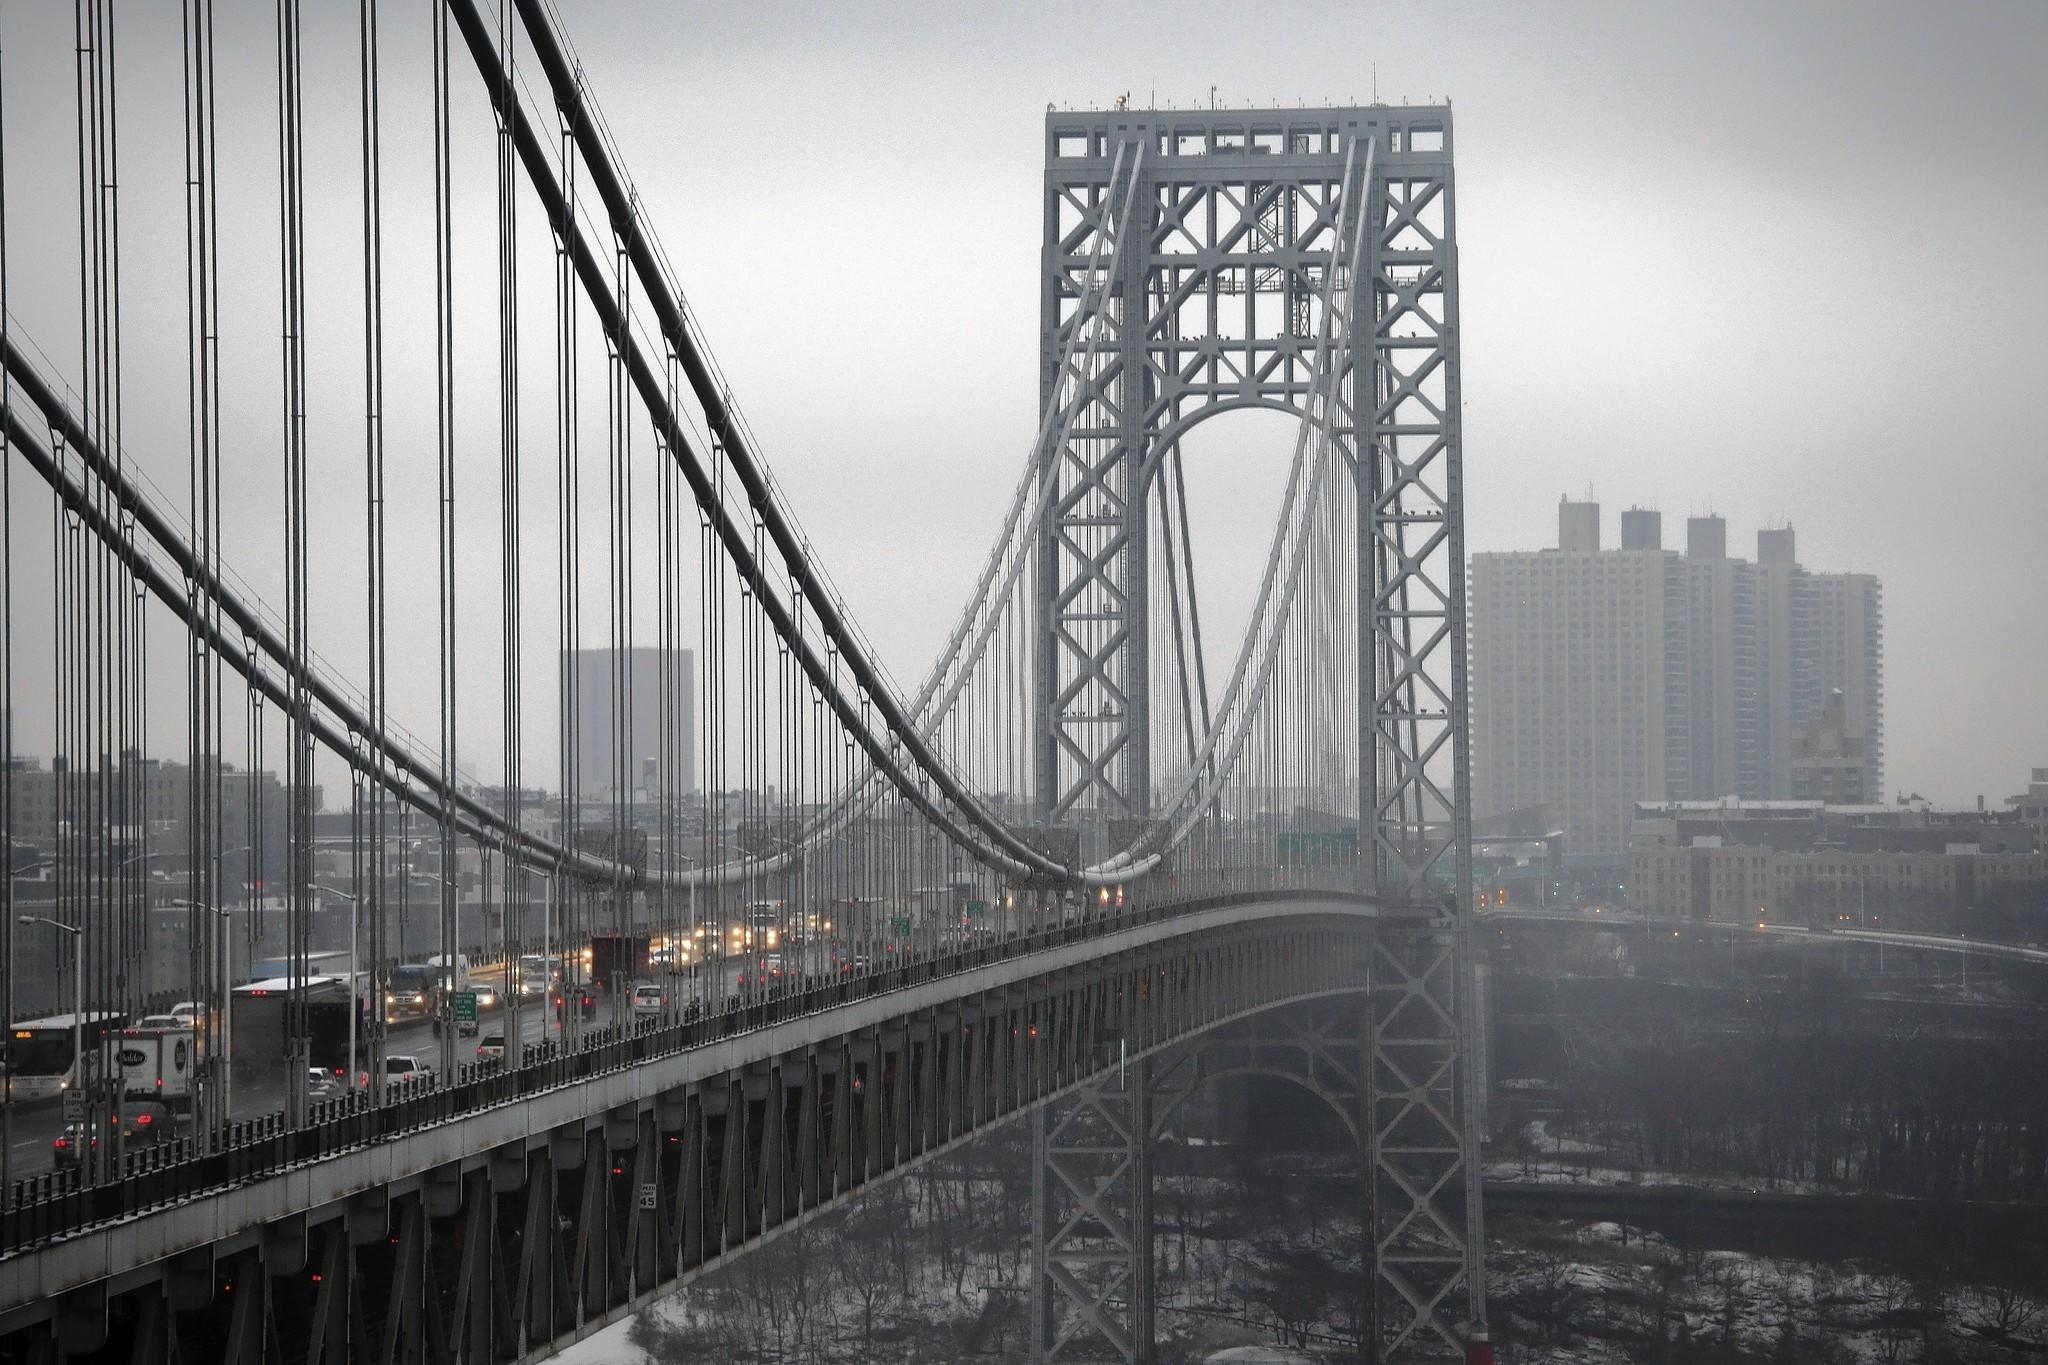 The determination and dedication of reporters at The Record in Bergen County, N.J., uncovered the George Washington Bridge scandal in Fort Lee.